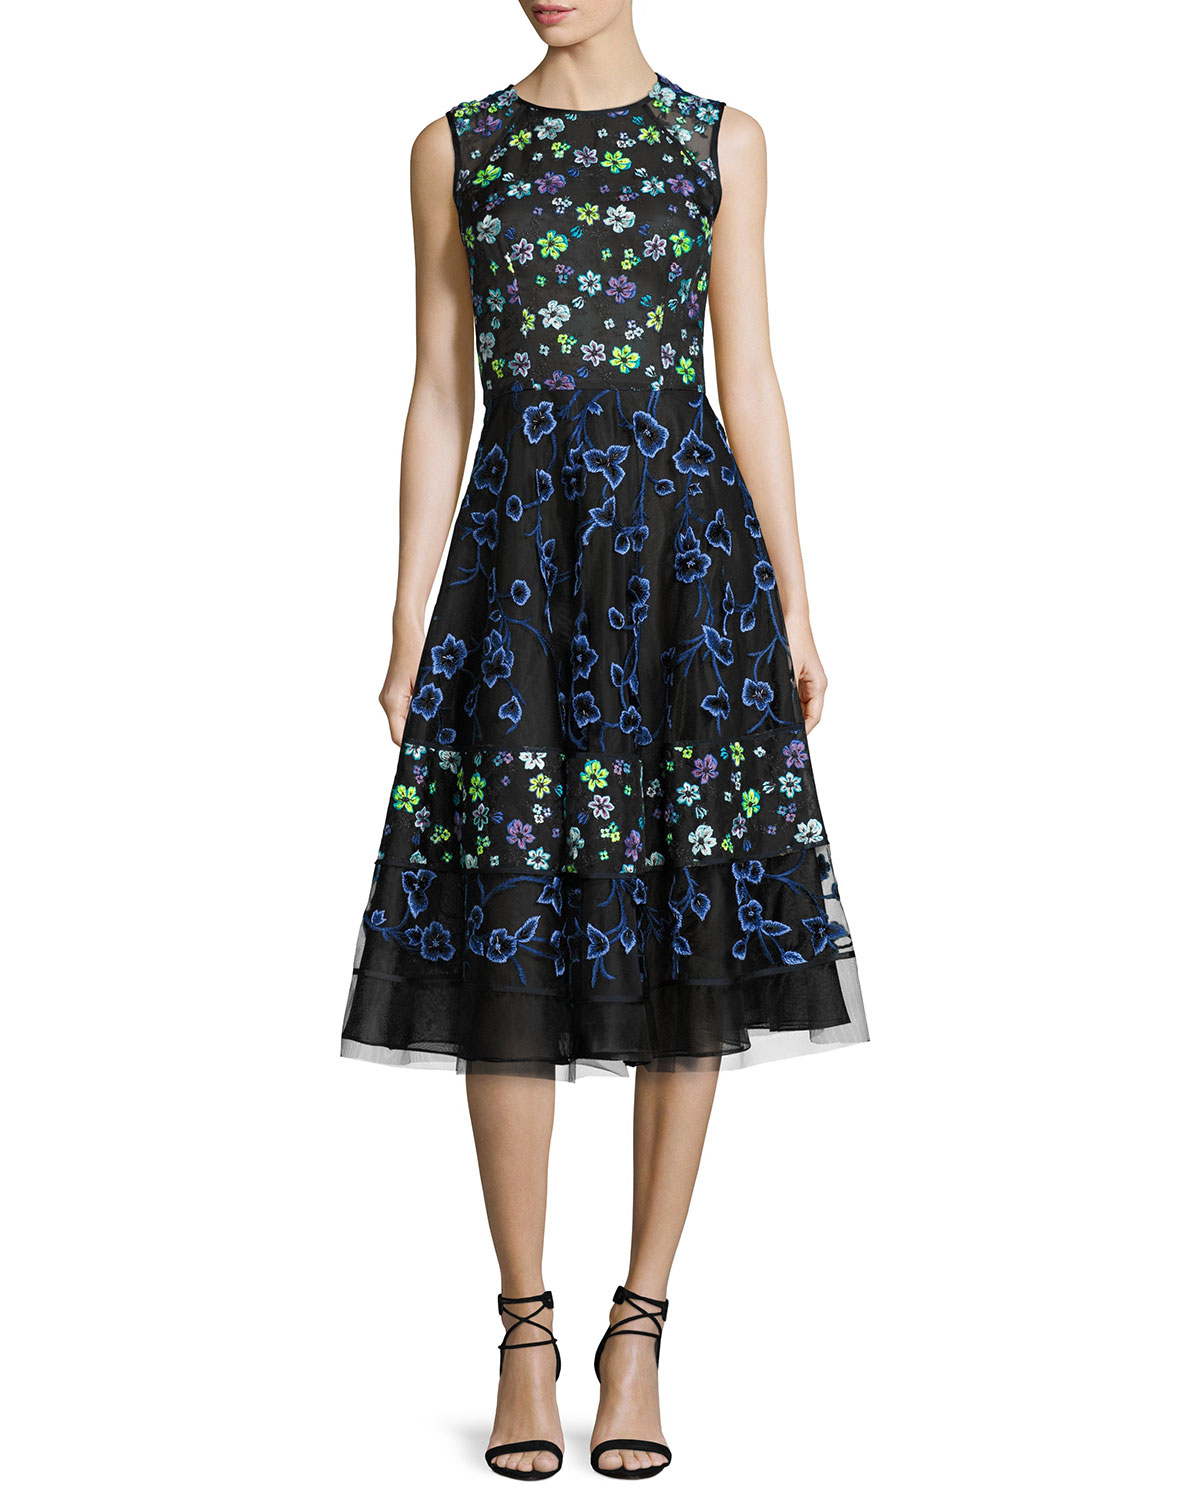 Floral-Embroidered Sleeveless Cocktail Dress, Black/Multi